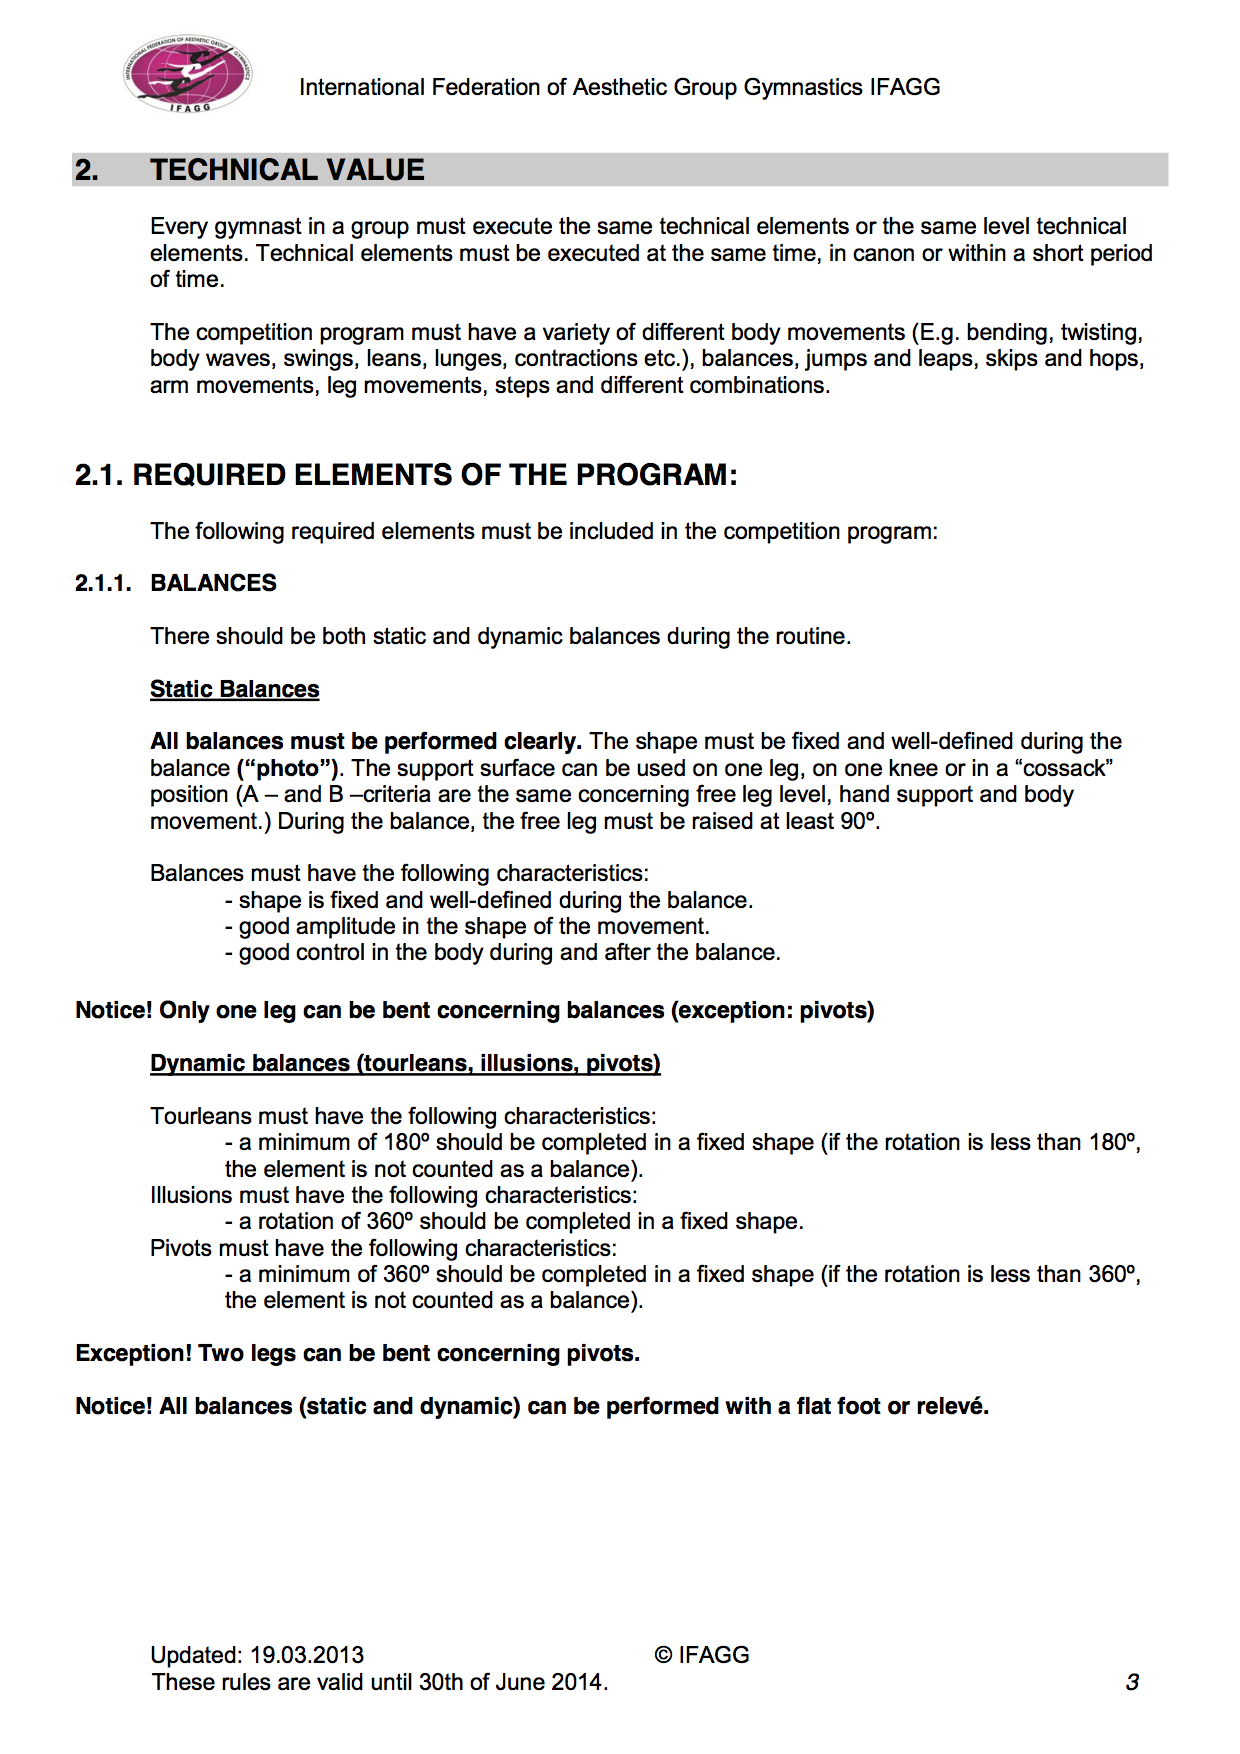 IFAGG Competition rules3.jpg